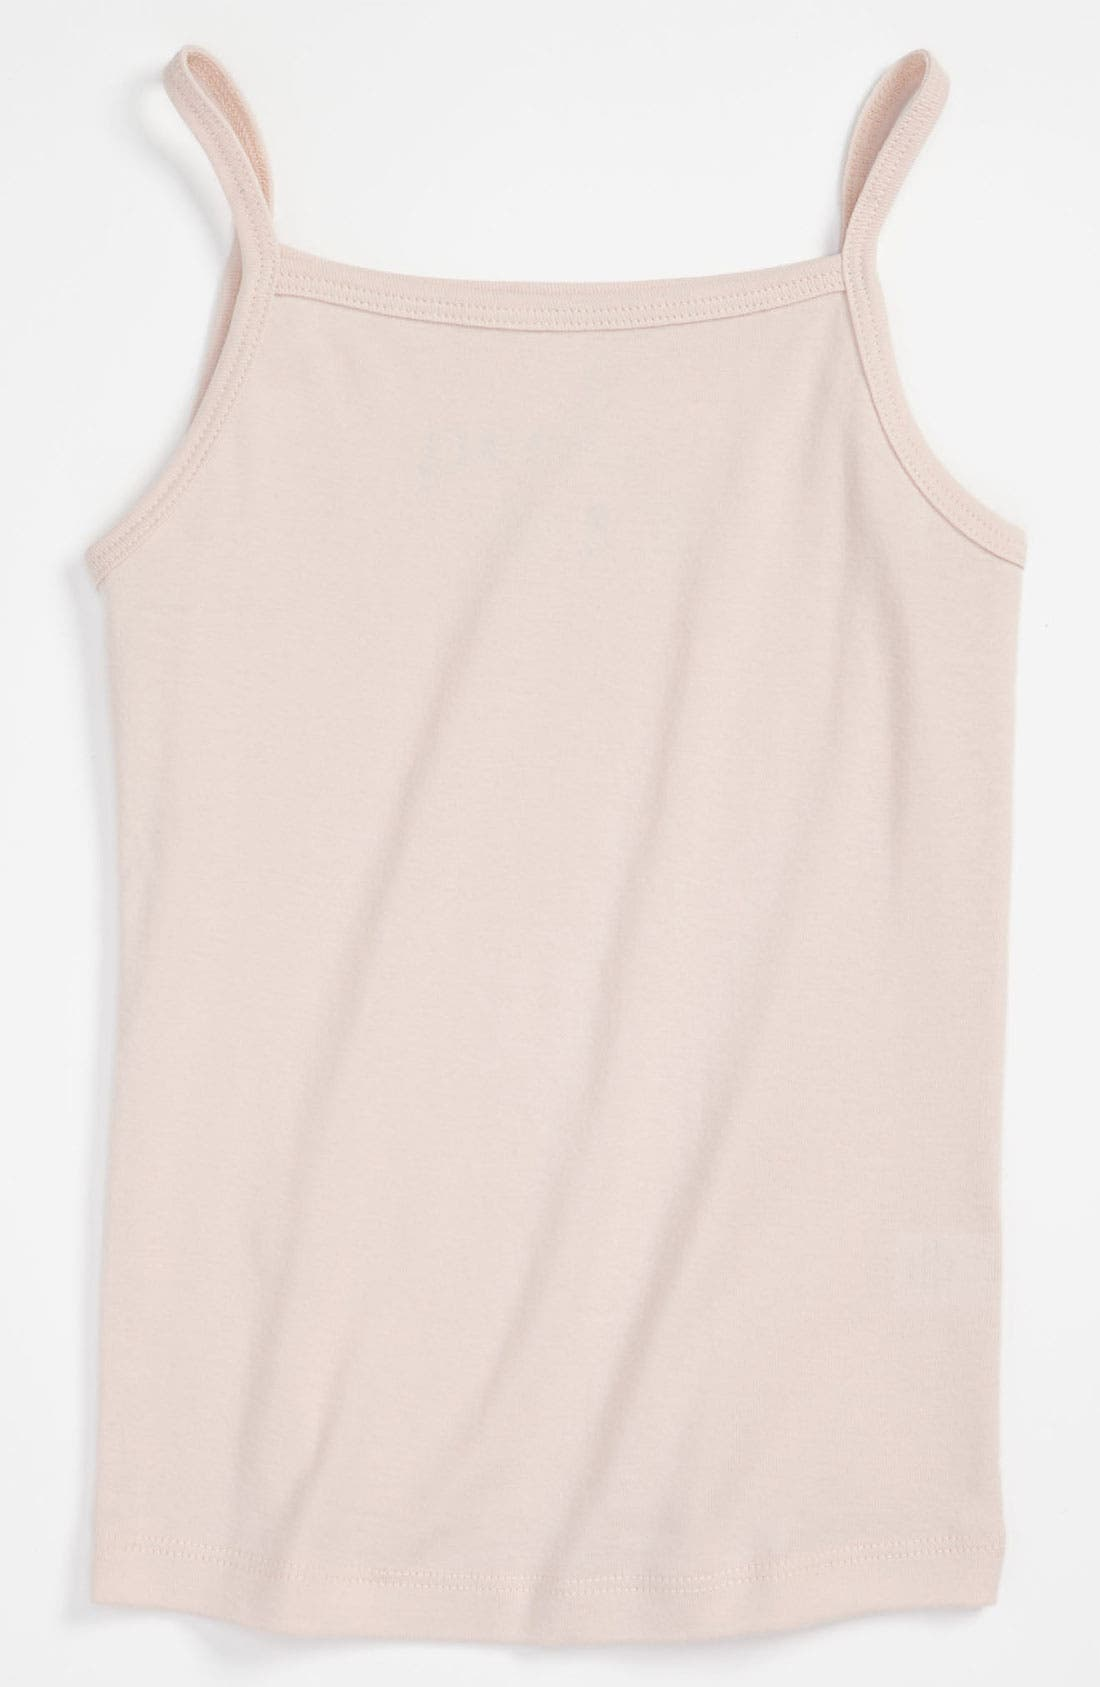 Main Image - Peek 'Taylor' Tank Top (Toddler, Little Girls & Big Girls)